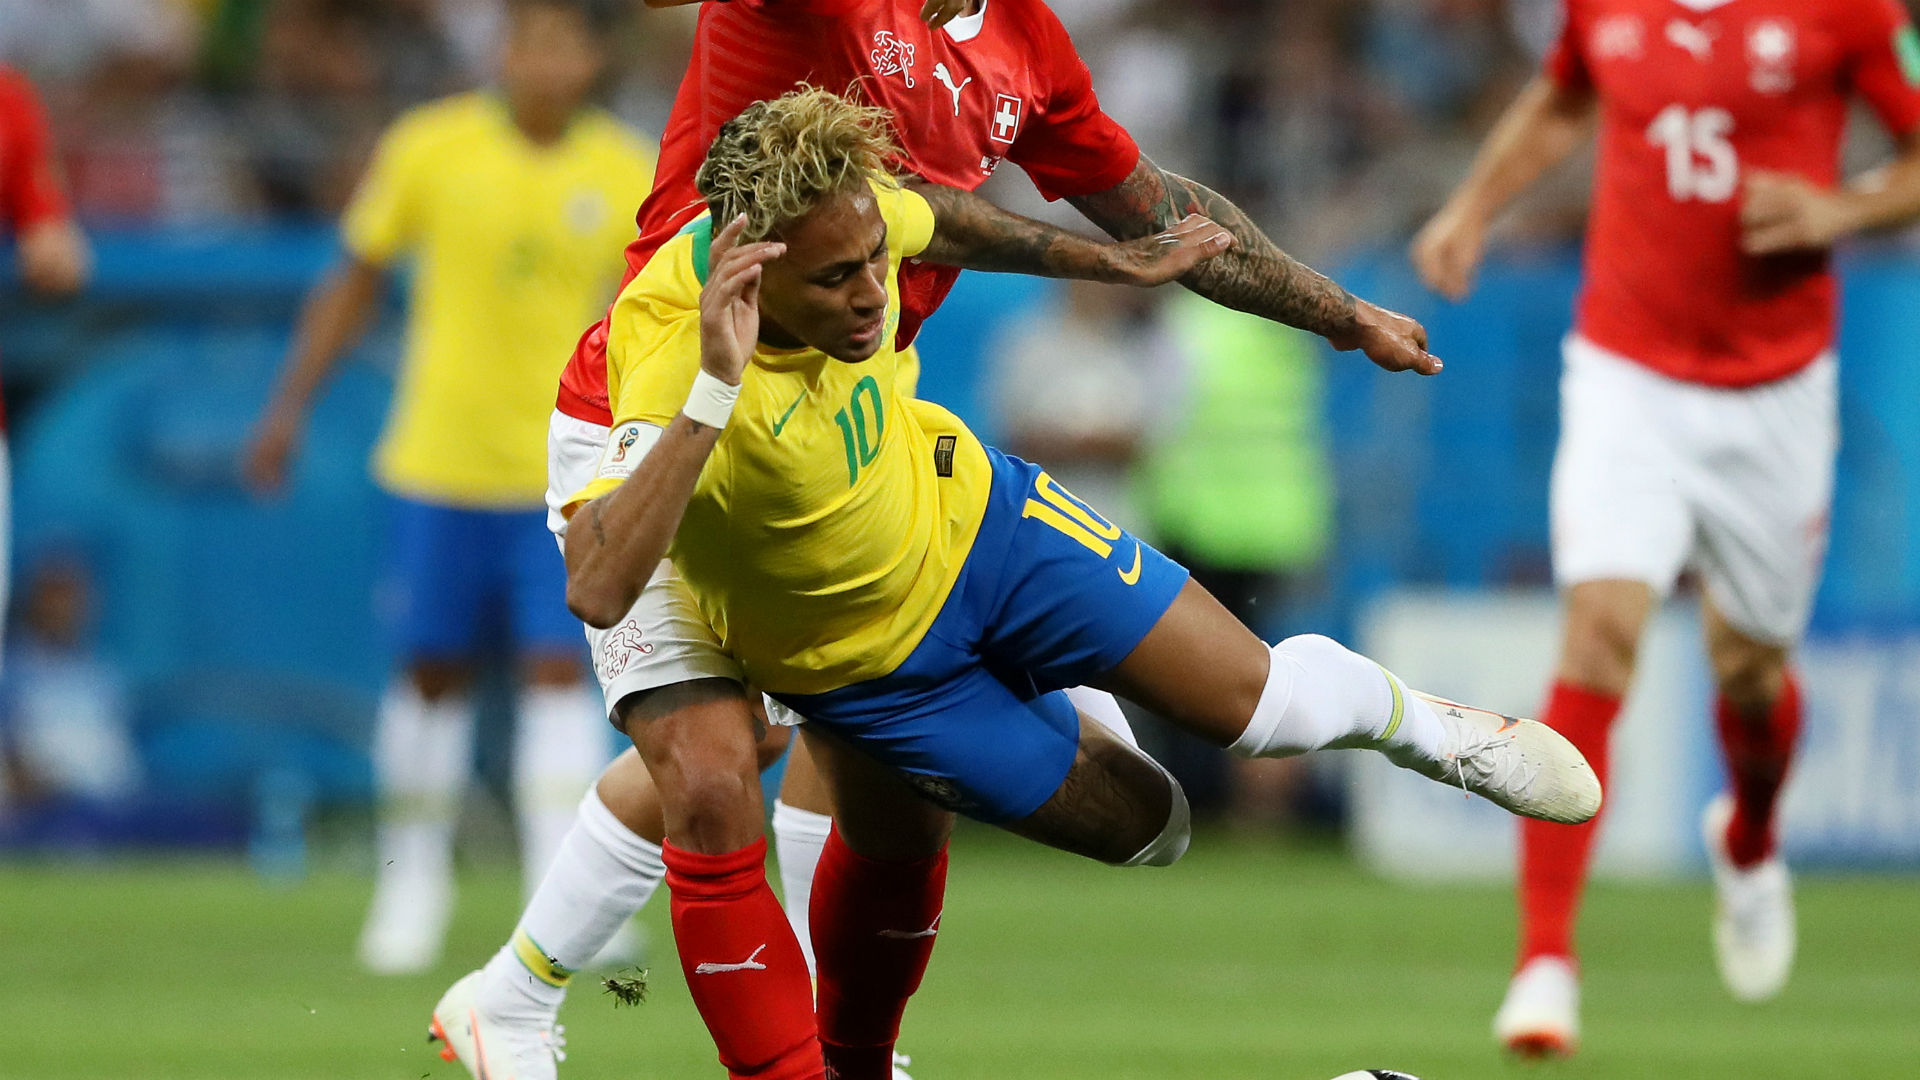 Brazil drawing 0-0 with Costa Rica at halftime